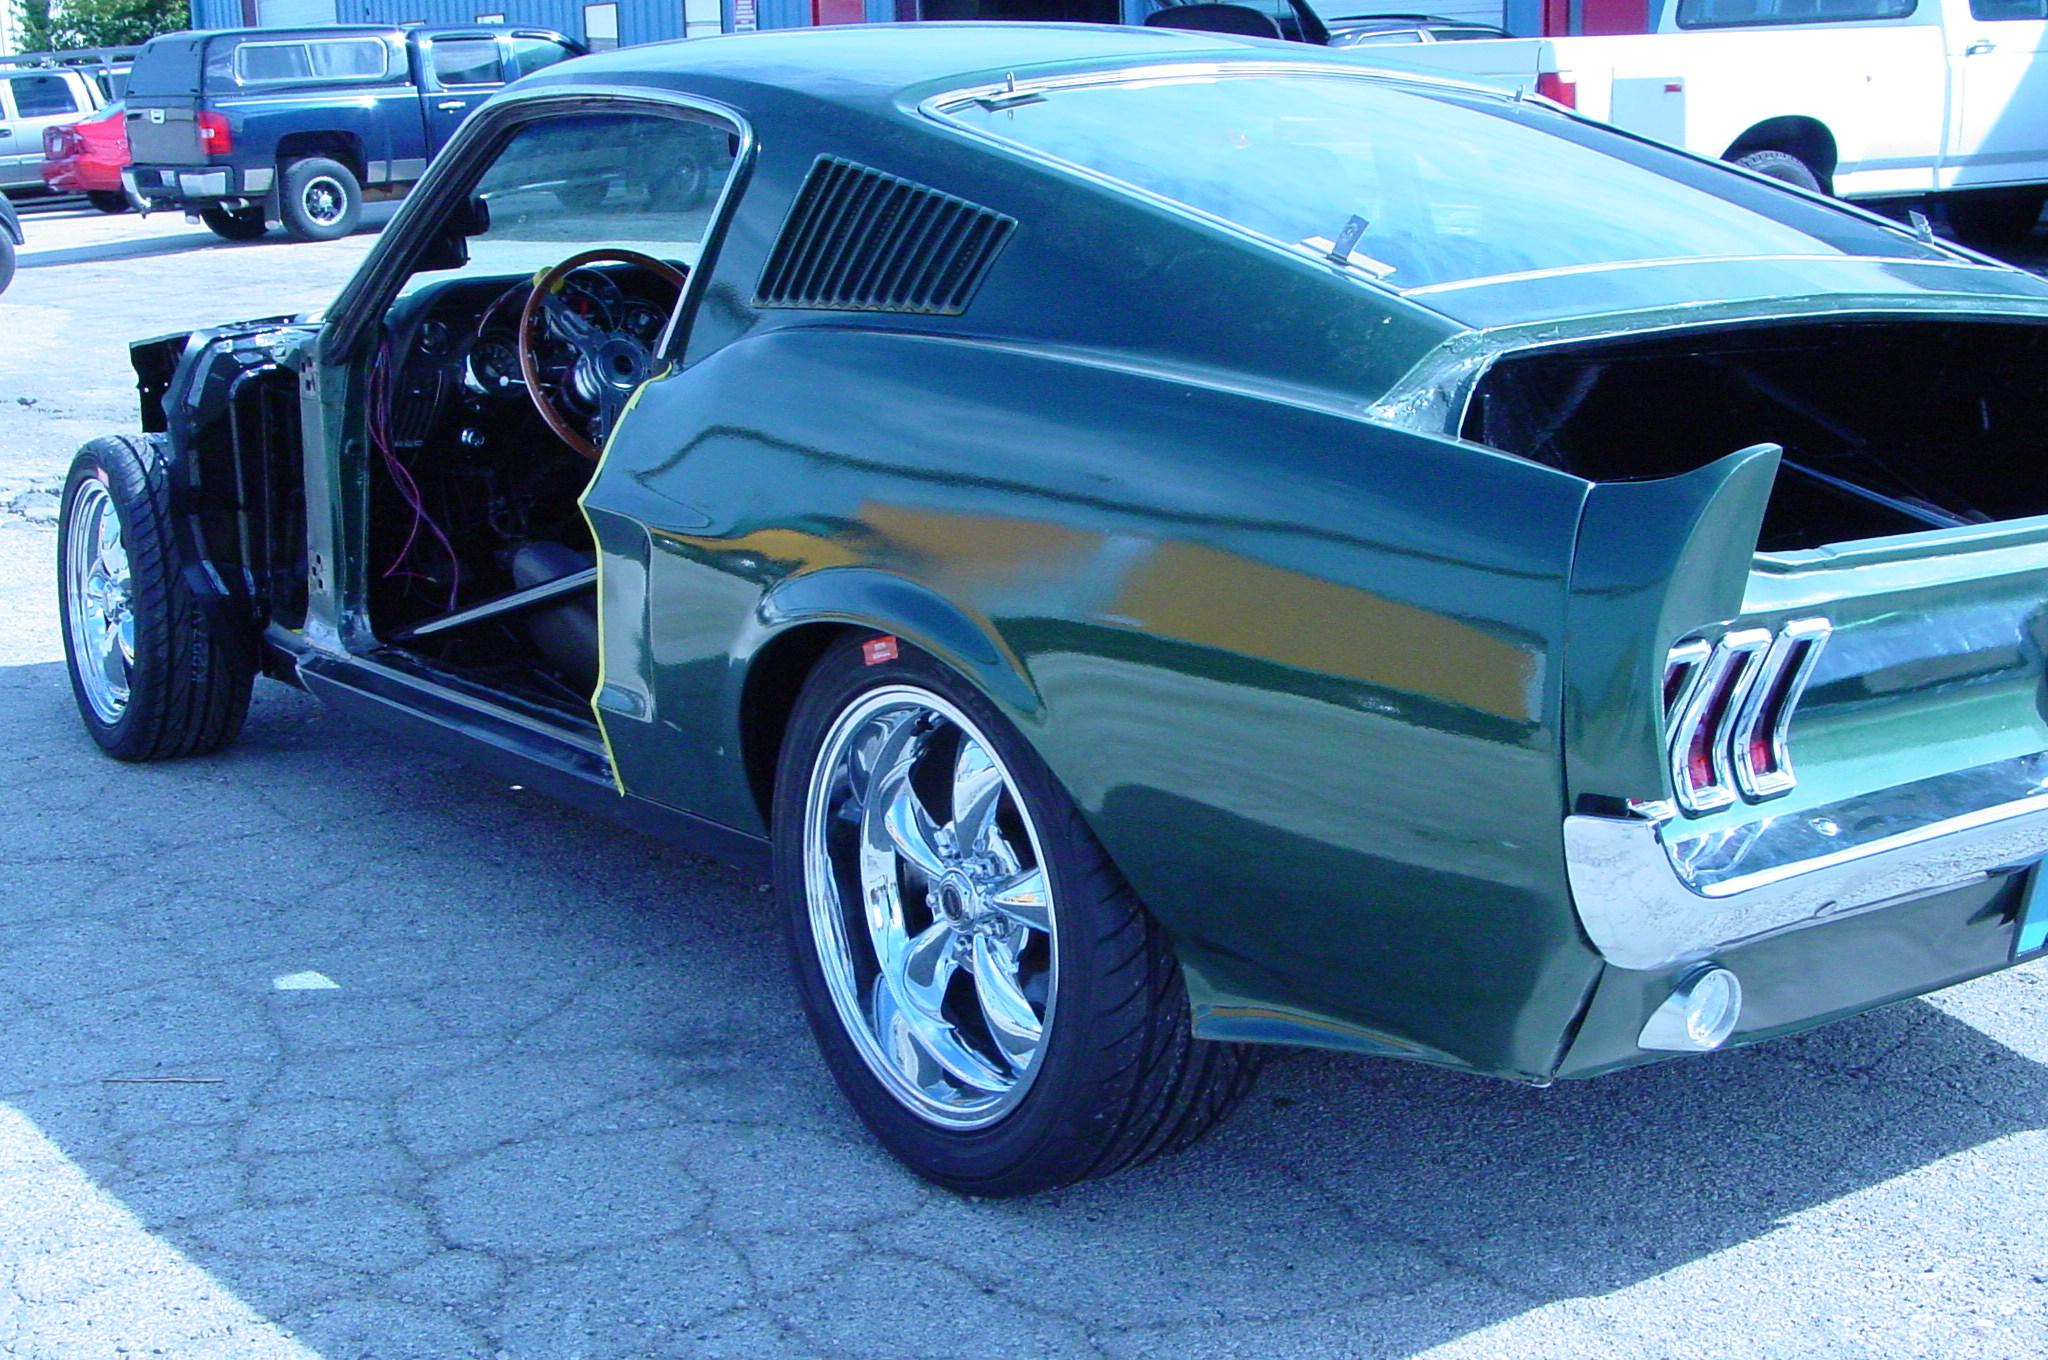 67 Mustang Fastback, 4 speed, 4 link, Tubbed, Roll Cage, Coil Overs